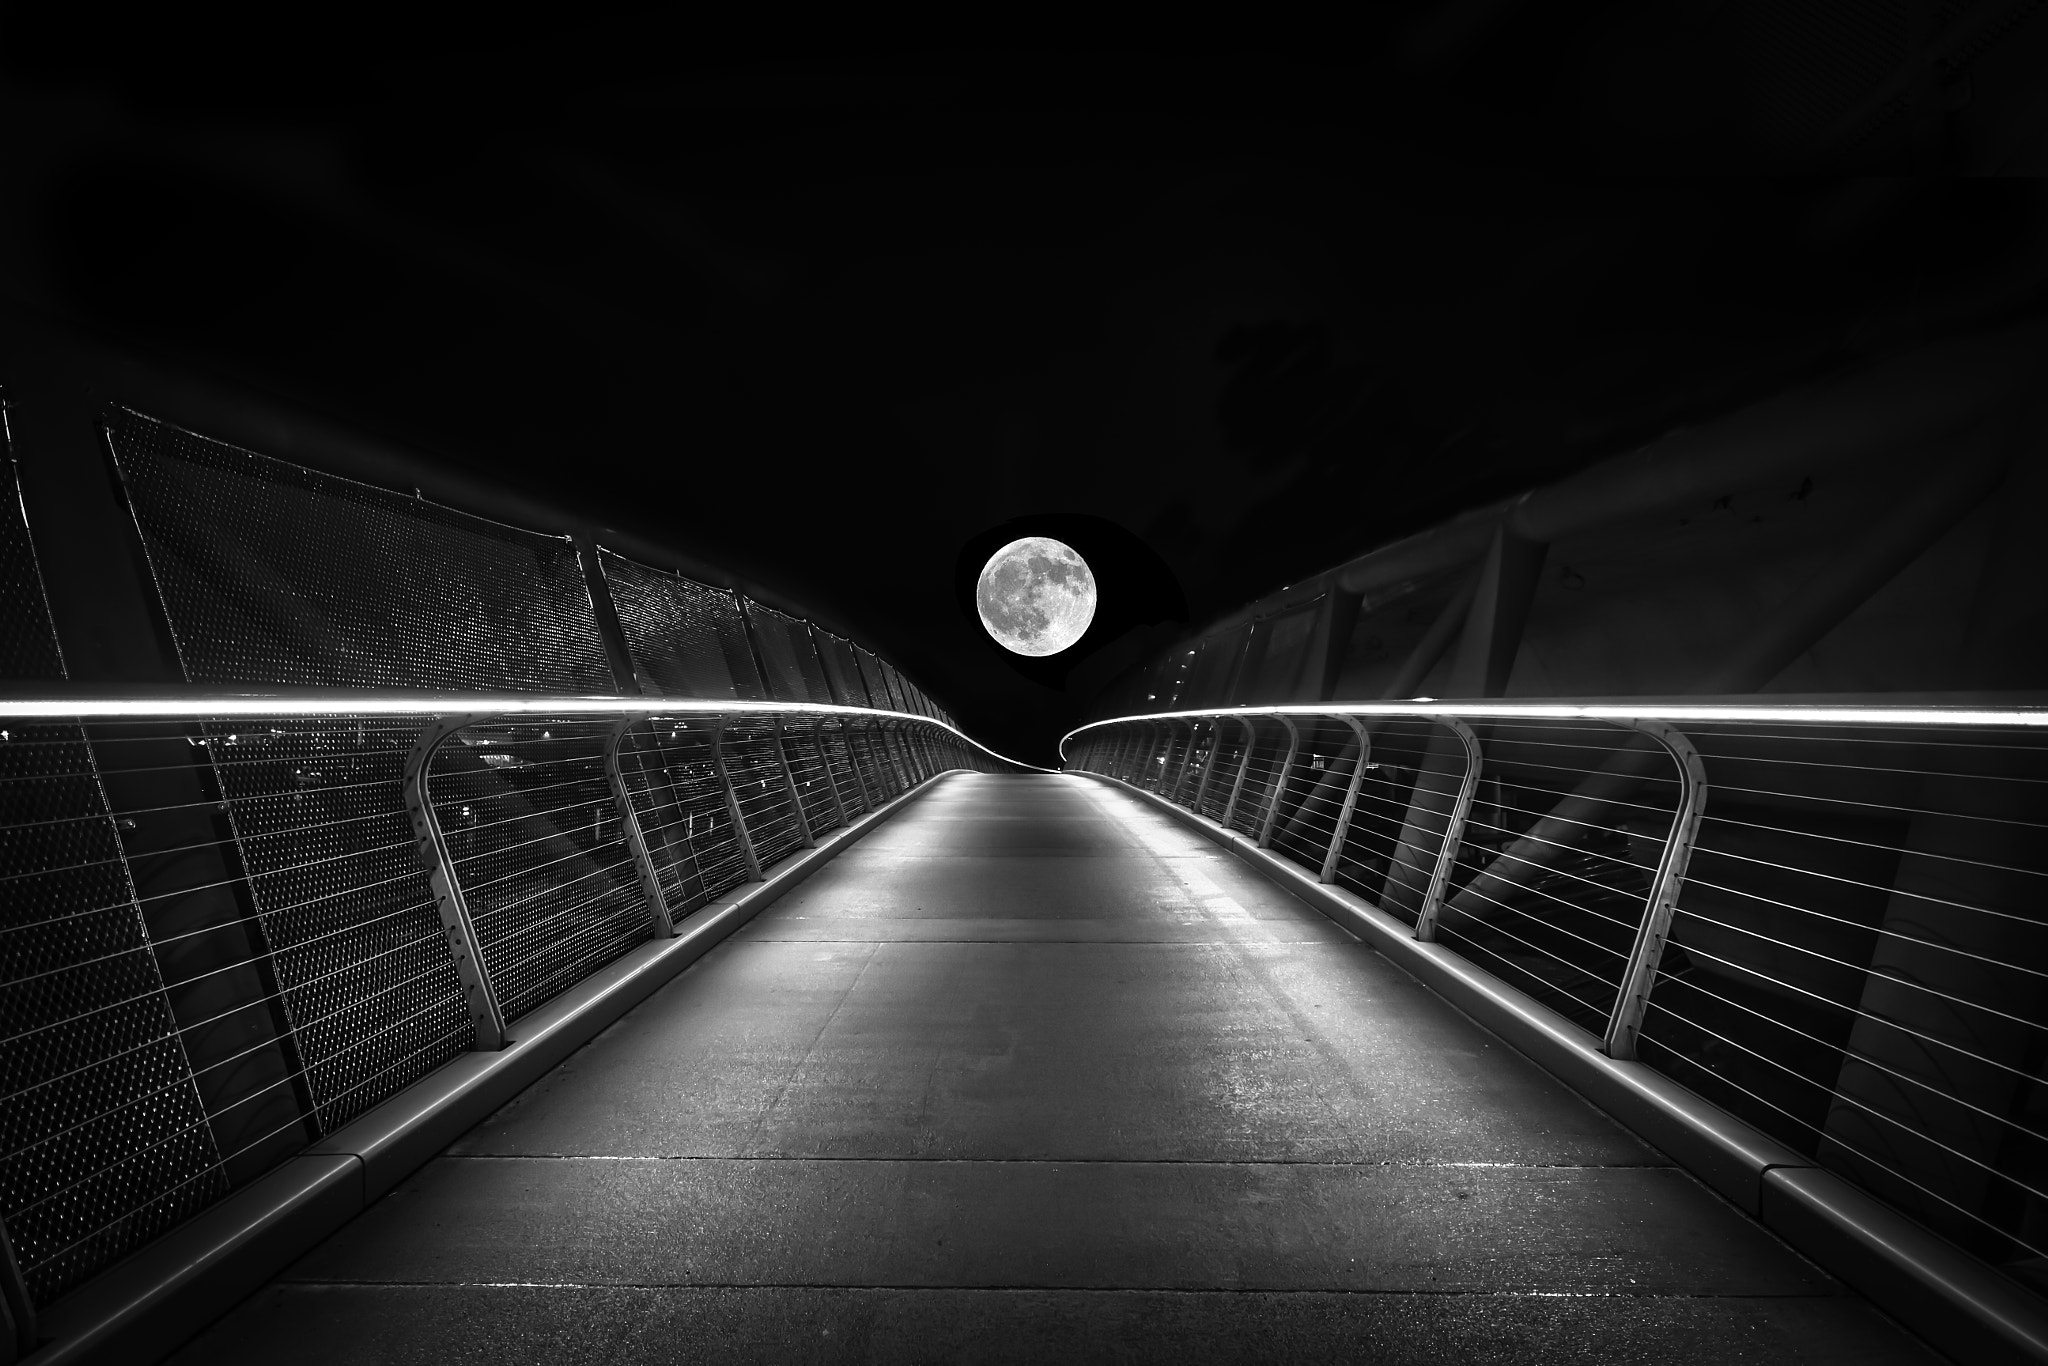 Photograph Howl at the moon by Kerim Hadzi on 500px